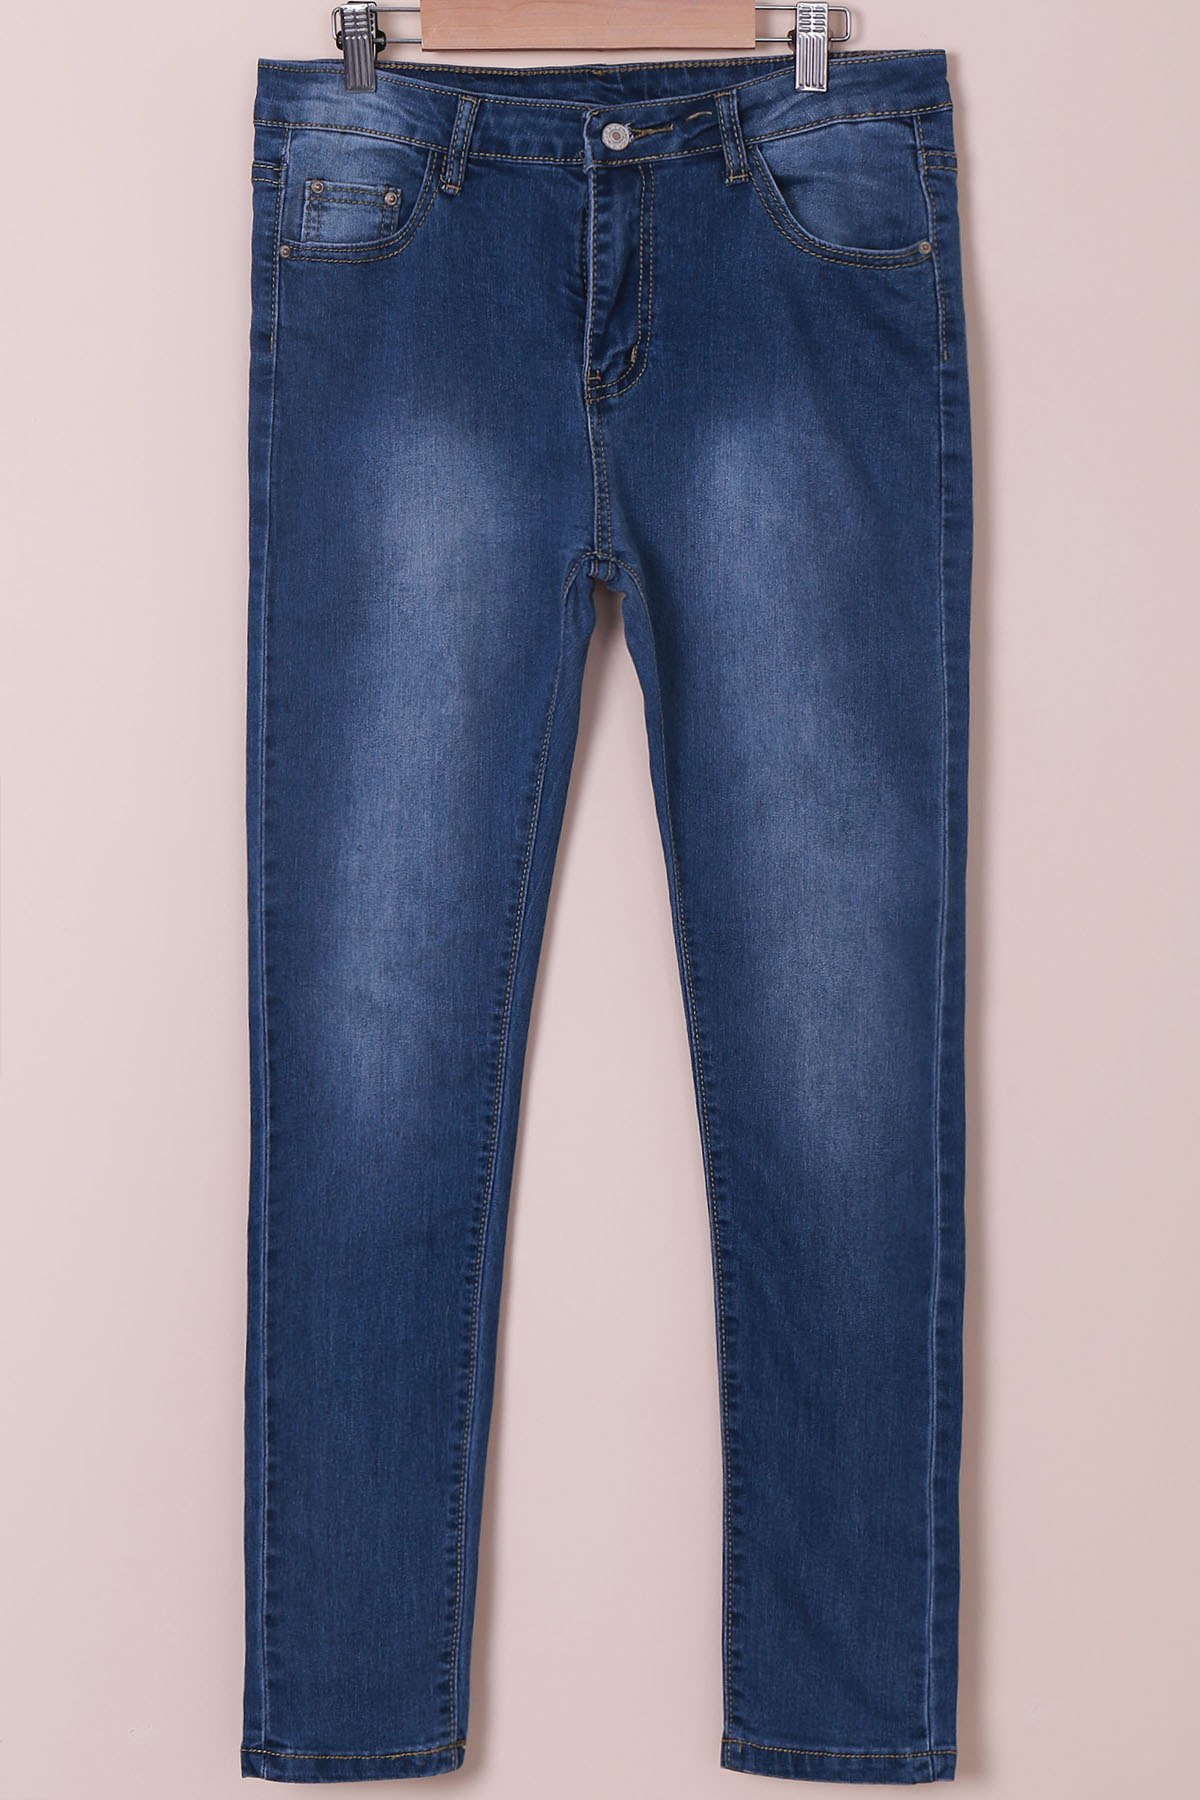 High-Waisted Tapered JeansWOMEN<br><br>Size: XL; Color: BLUE; Material: Jean; Length: Normal; Fabric Type: Denim; Wash: Light; Fit Type: Regular; Waist Type: High; Closure Type: Zipper Fly; Weight: 0.570kg; Pant Style: Pencil Pants; Package Contents: 1 x Jeans;